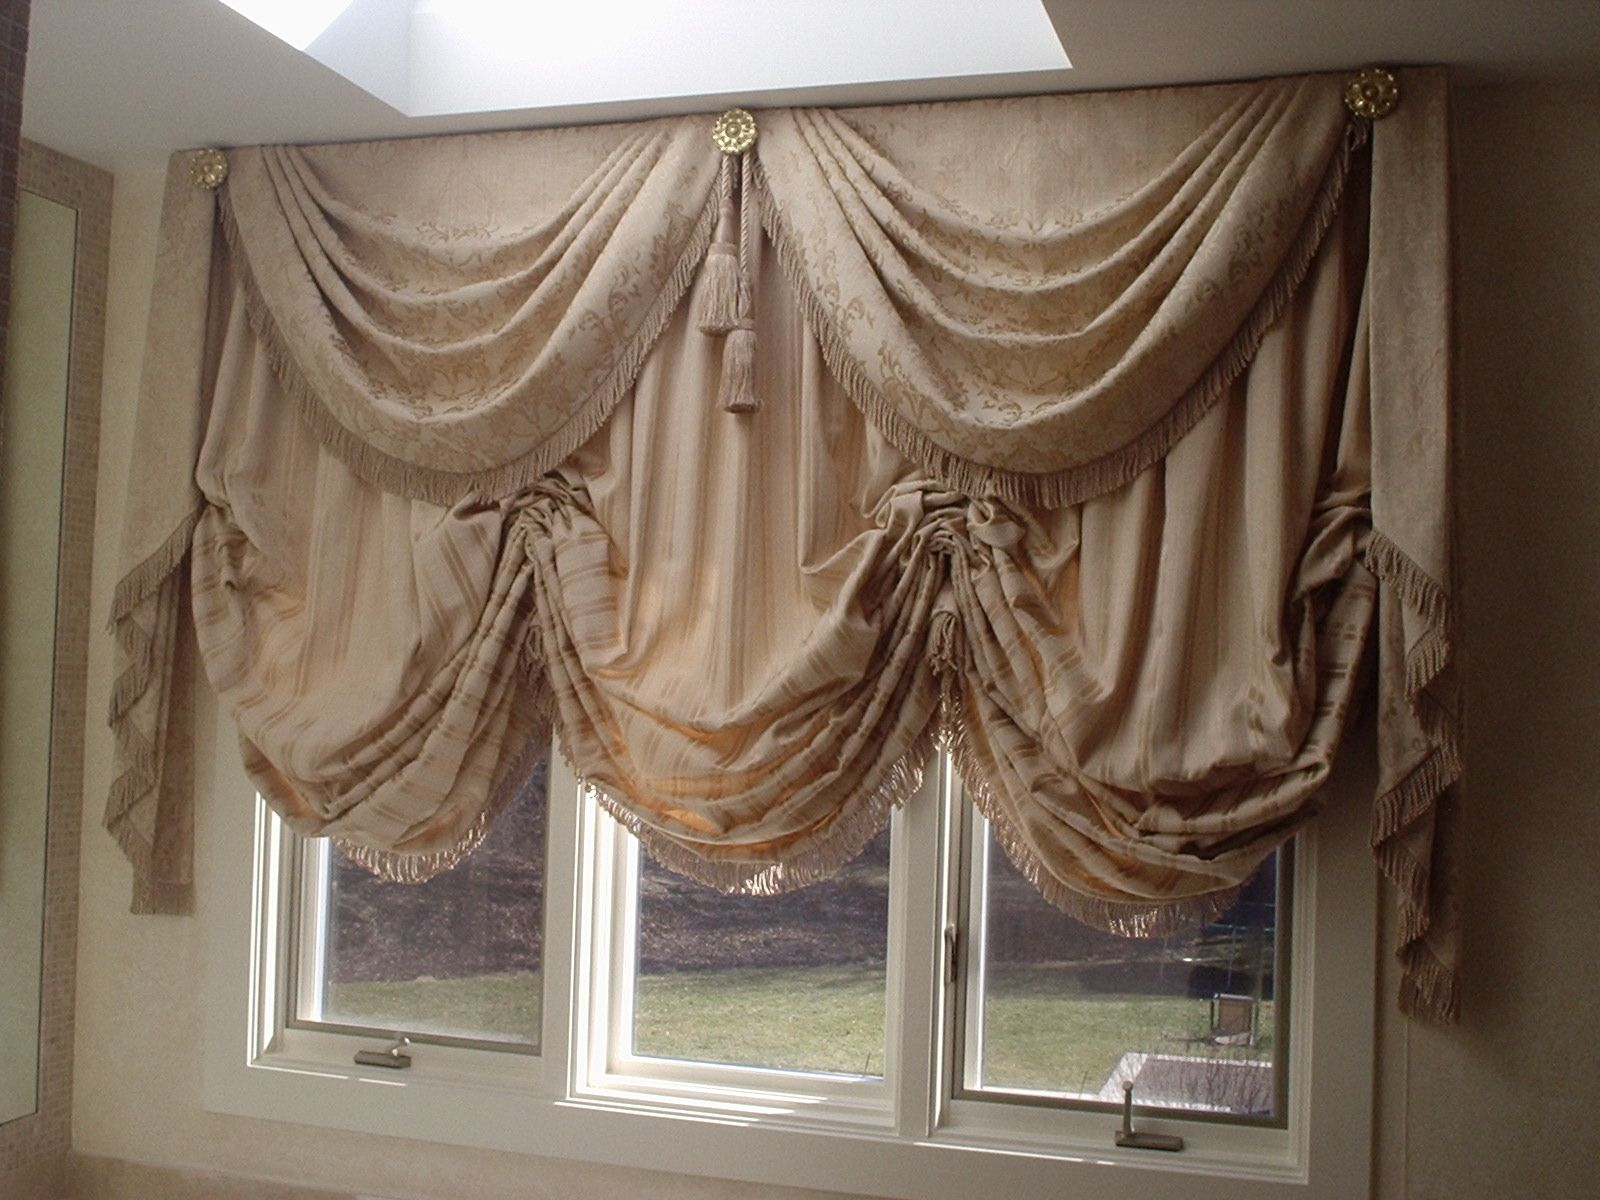 Operable Balloon Shade with Swag and Cascades | Sewing | Pinterest ...